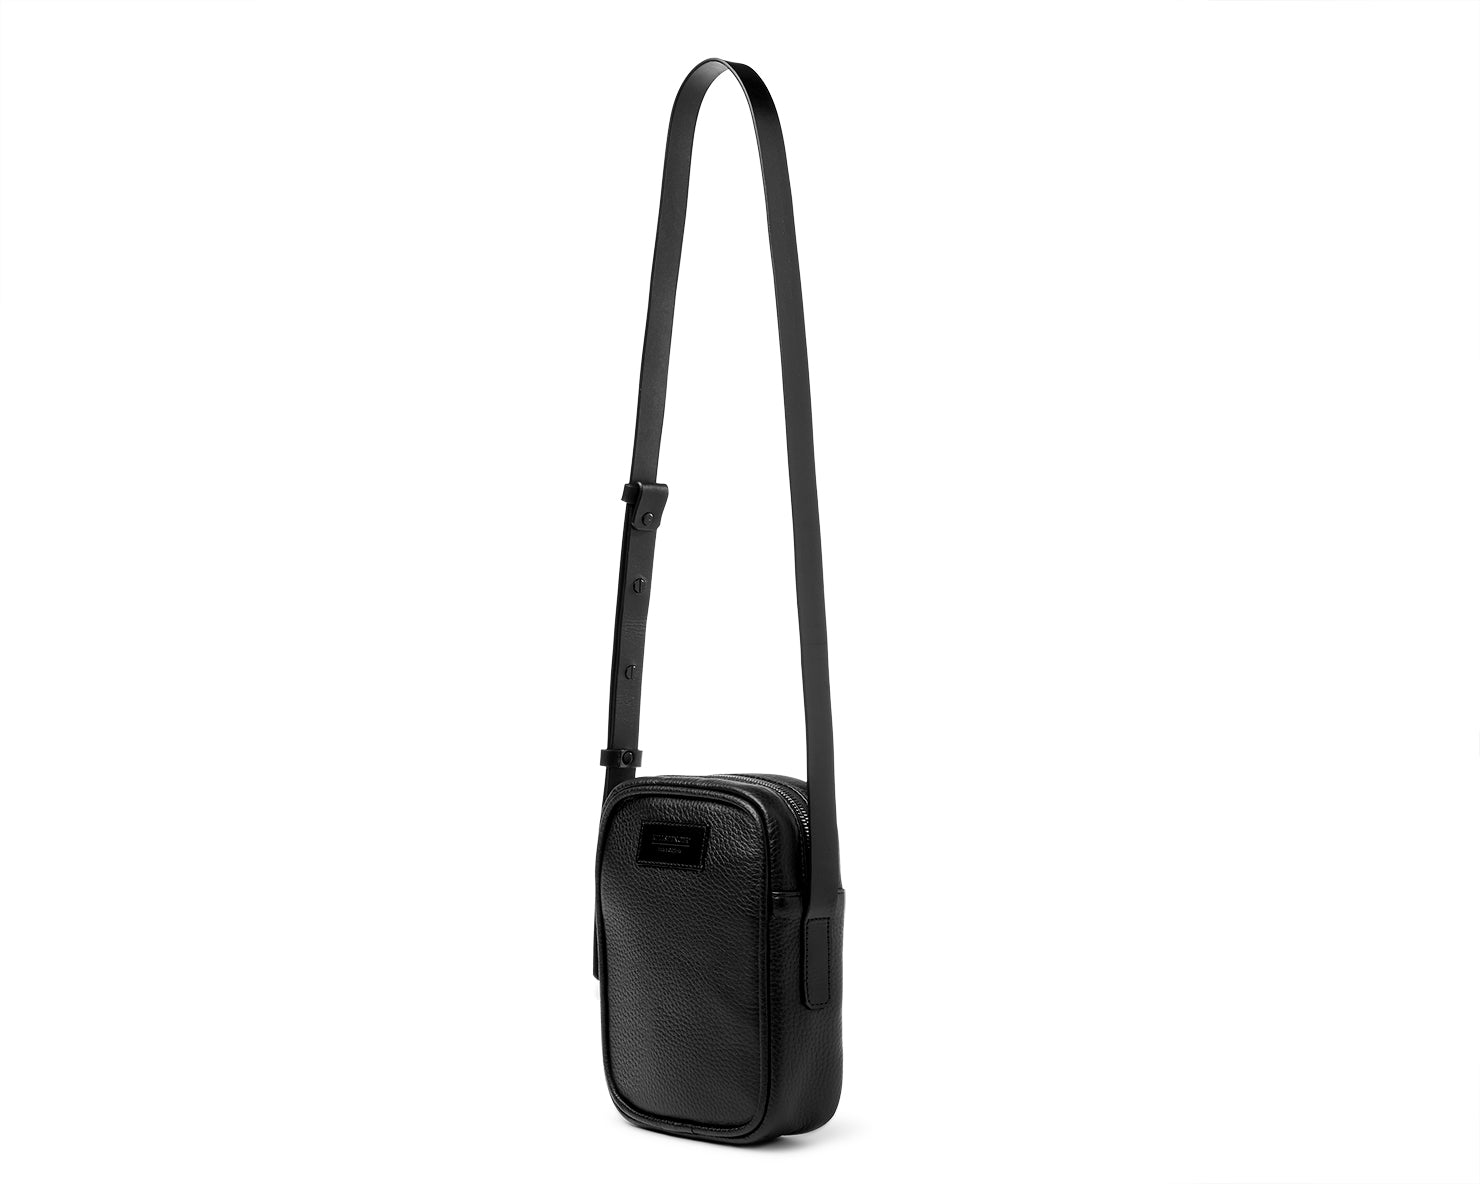 V-2 BAG | KILLSPENCER® - Black Leather